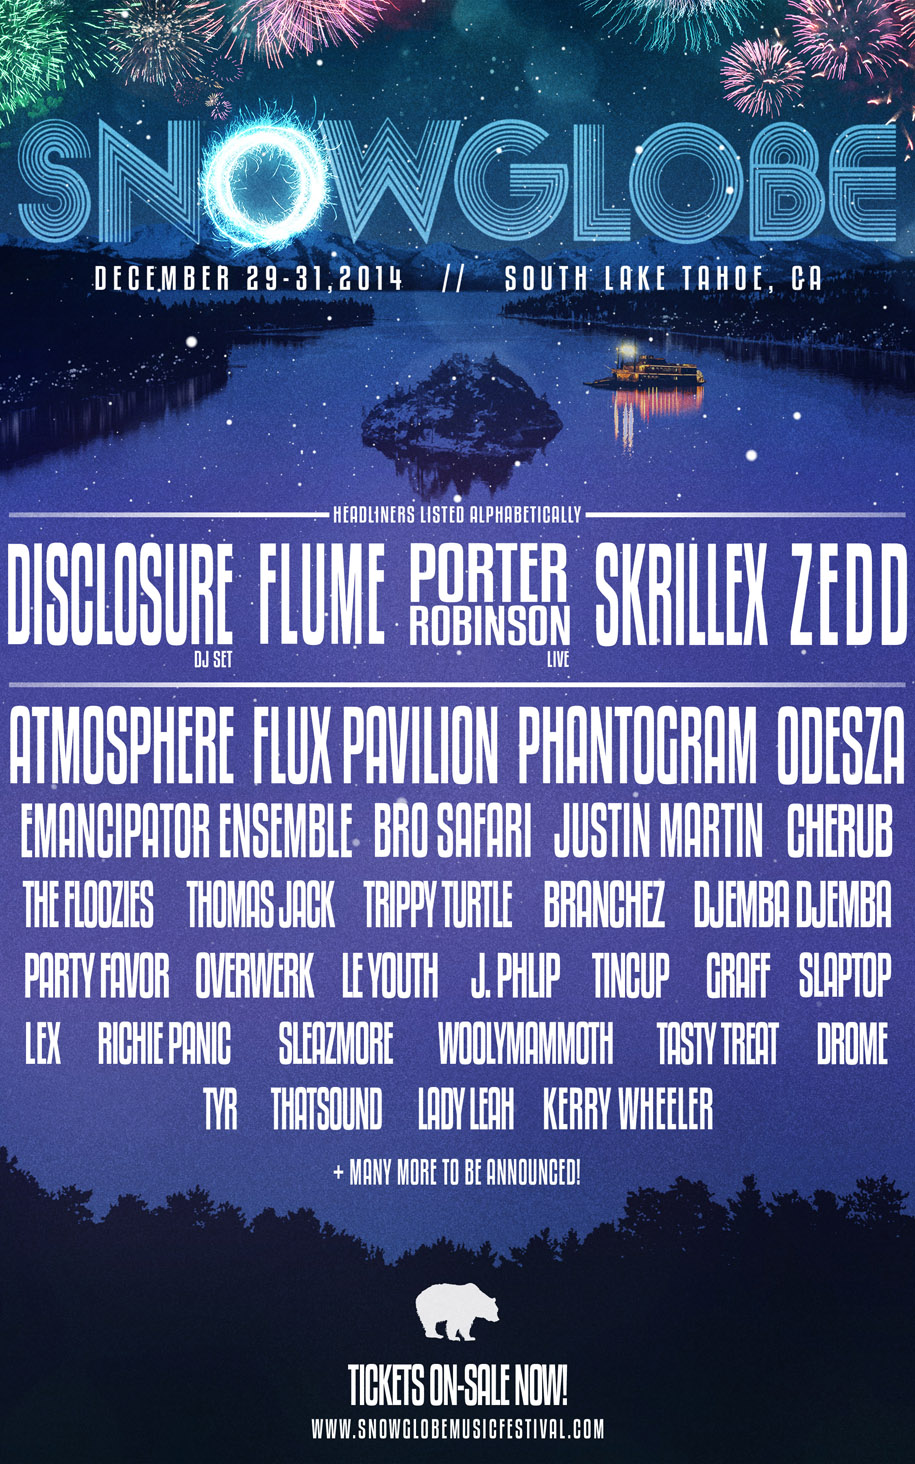 SnowGlobe Music Festival Releases 2014 Lineup